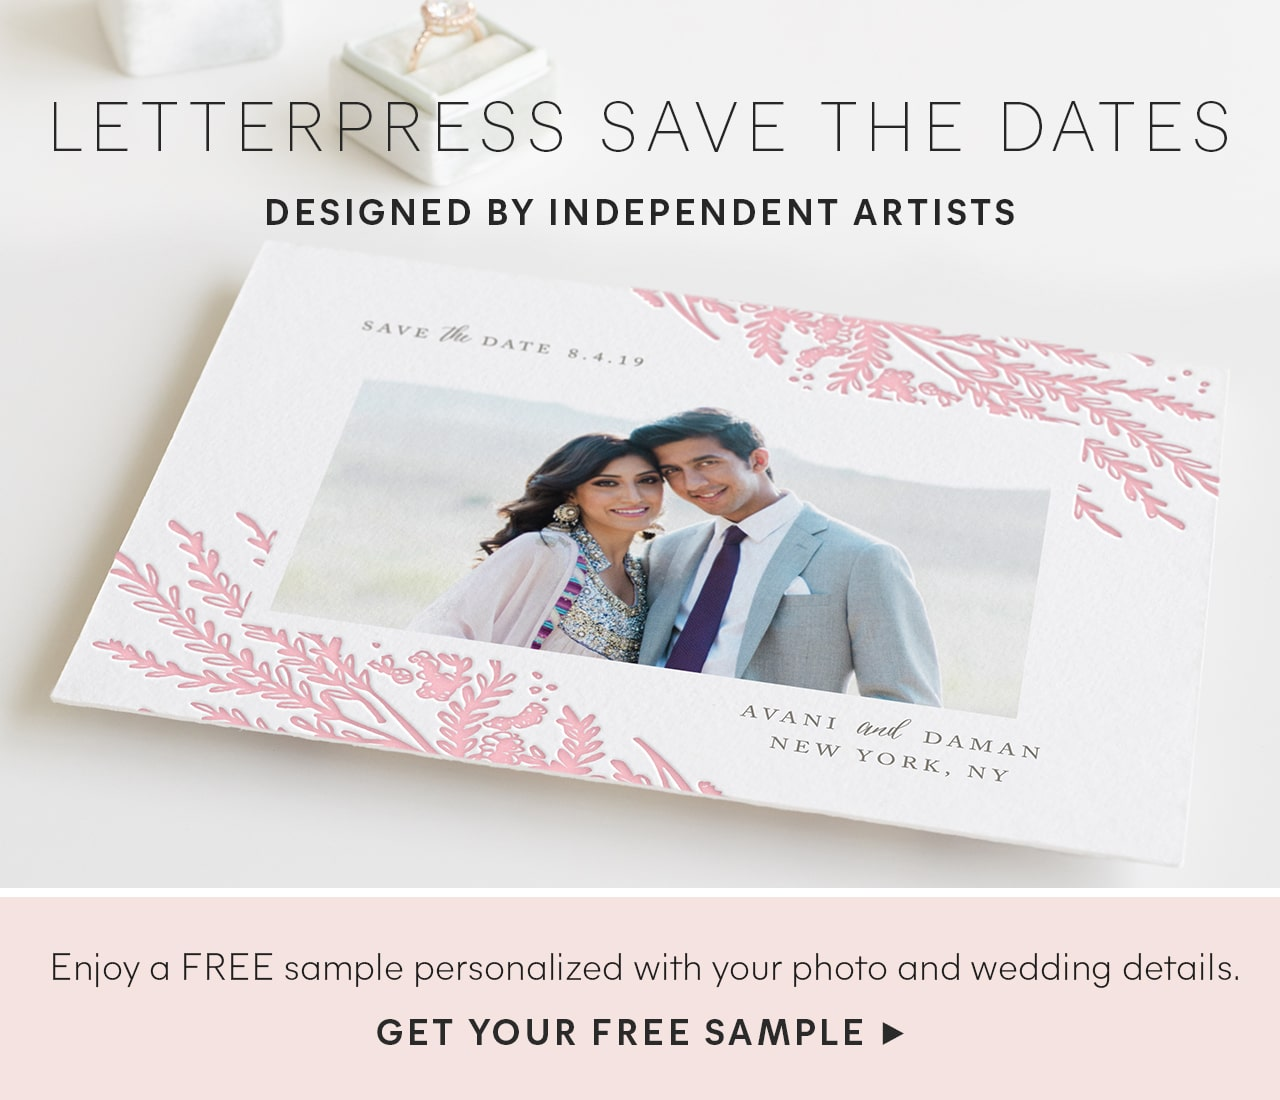 Letterpress Save the Dates